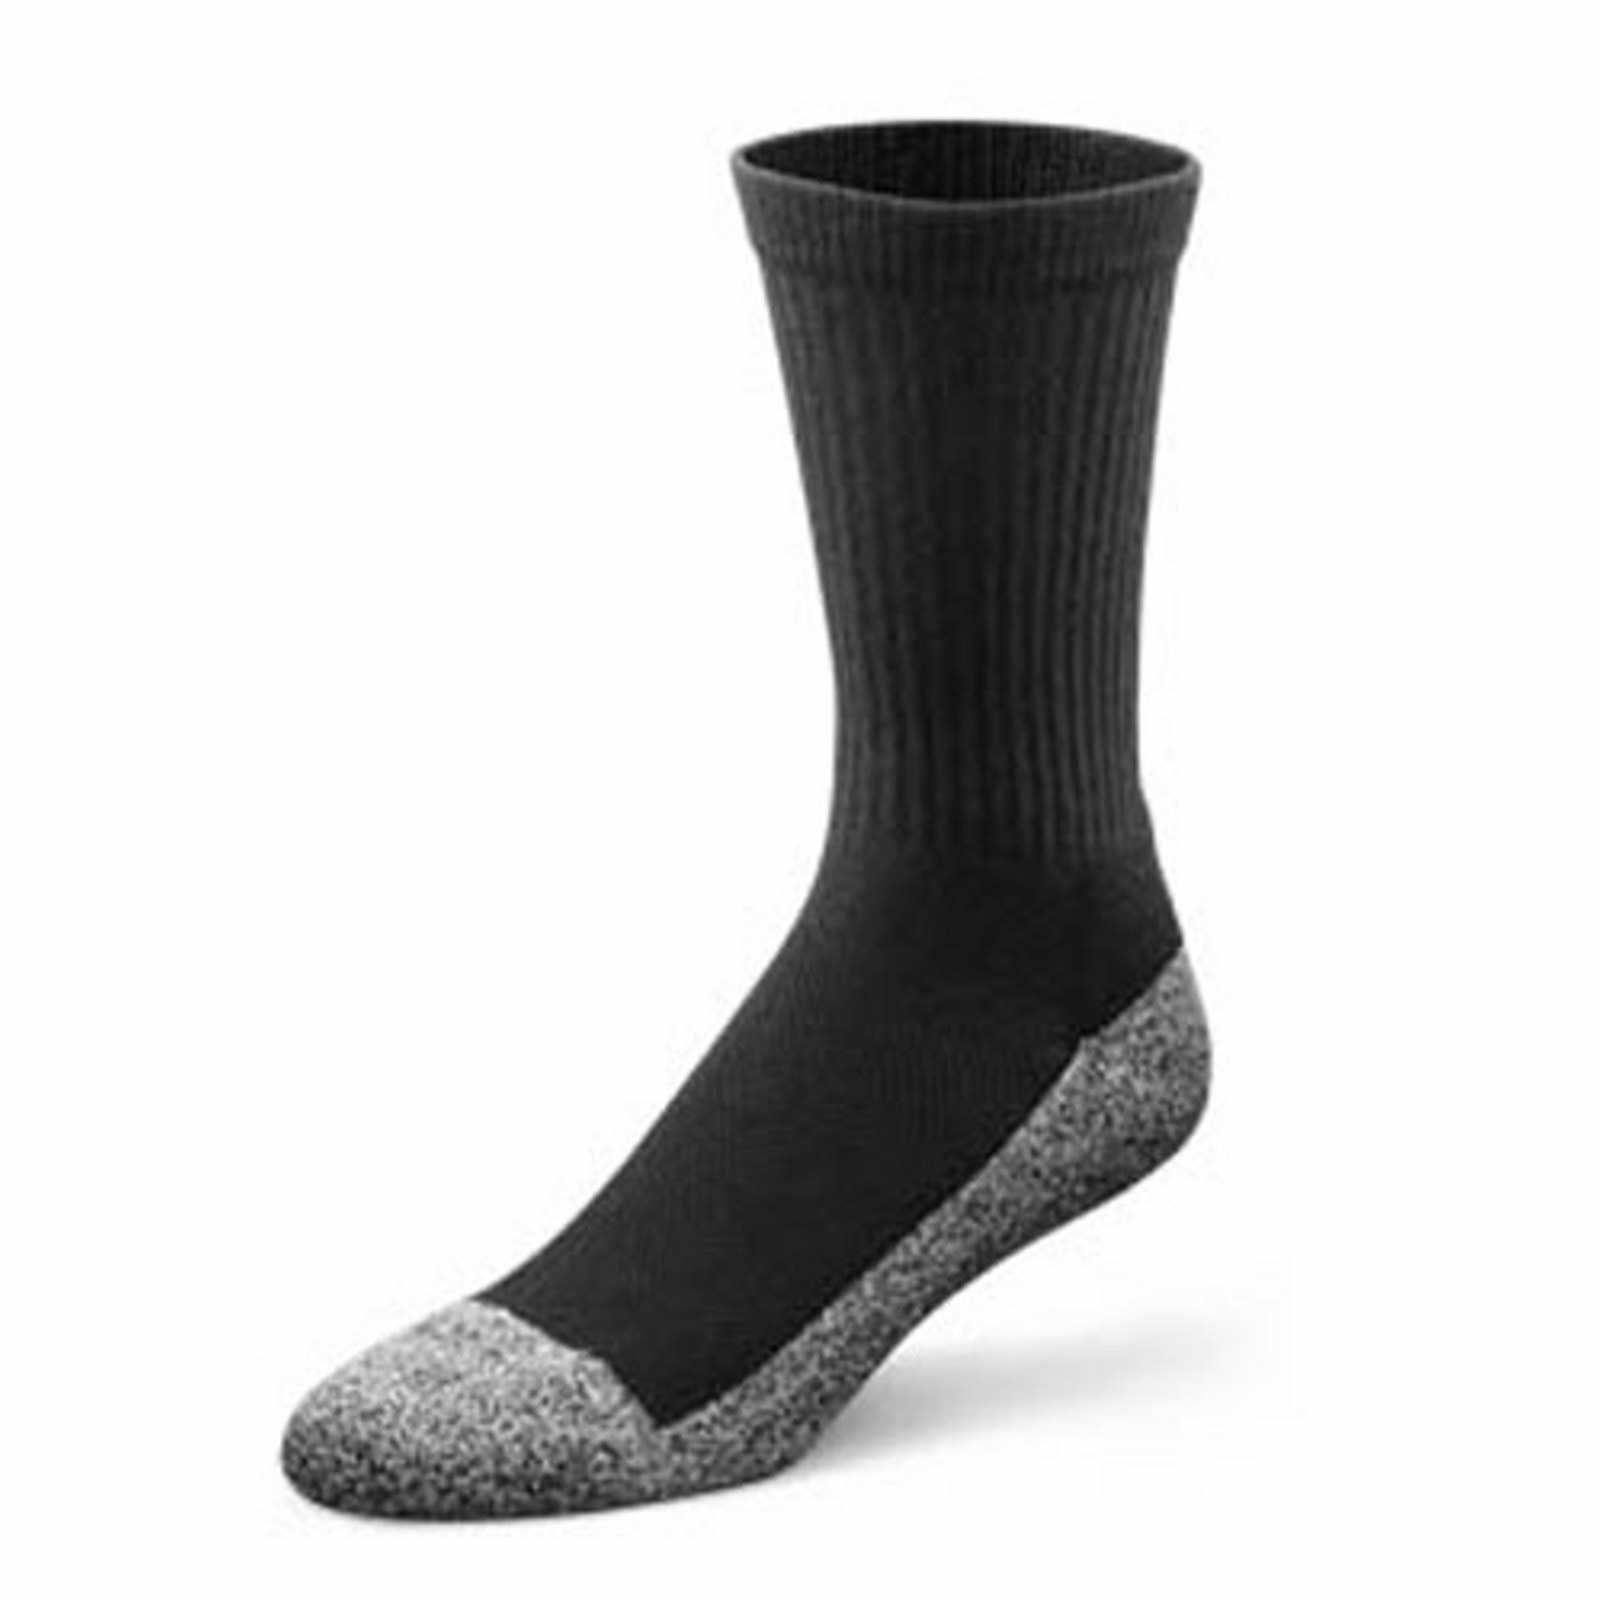 Dr Comfort Extra-Roomy Socks (4 Pair) - Men's Therapeutic Diabetic Socks - Athletic, Casual, Dress - Small (5) - Large (15) at Sears.com